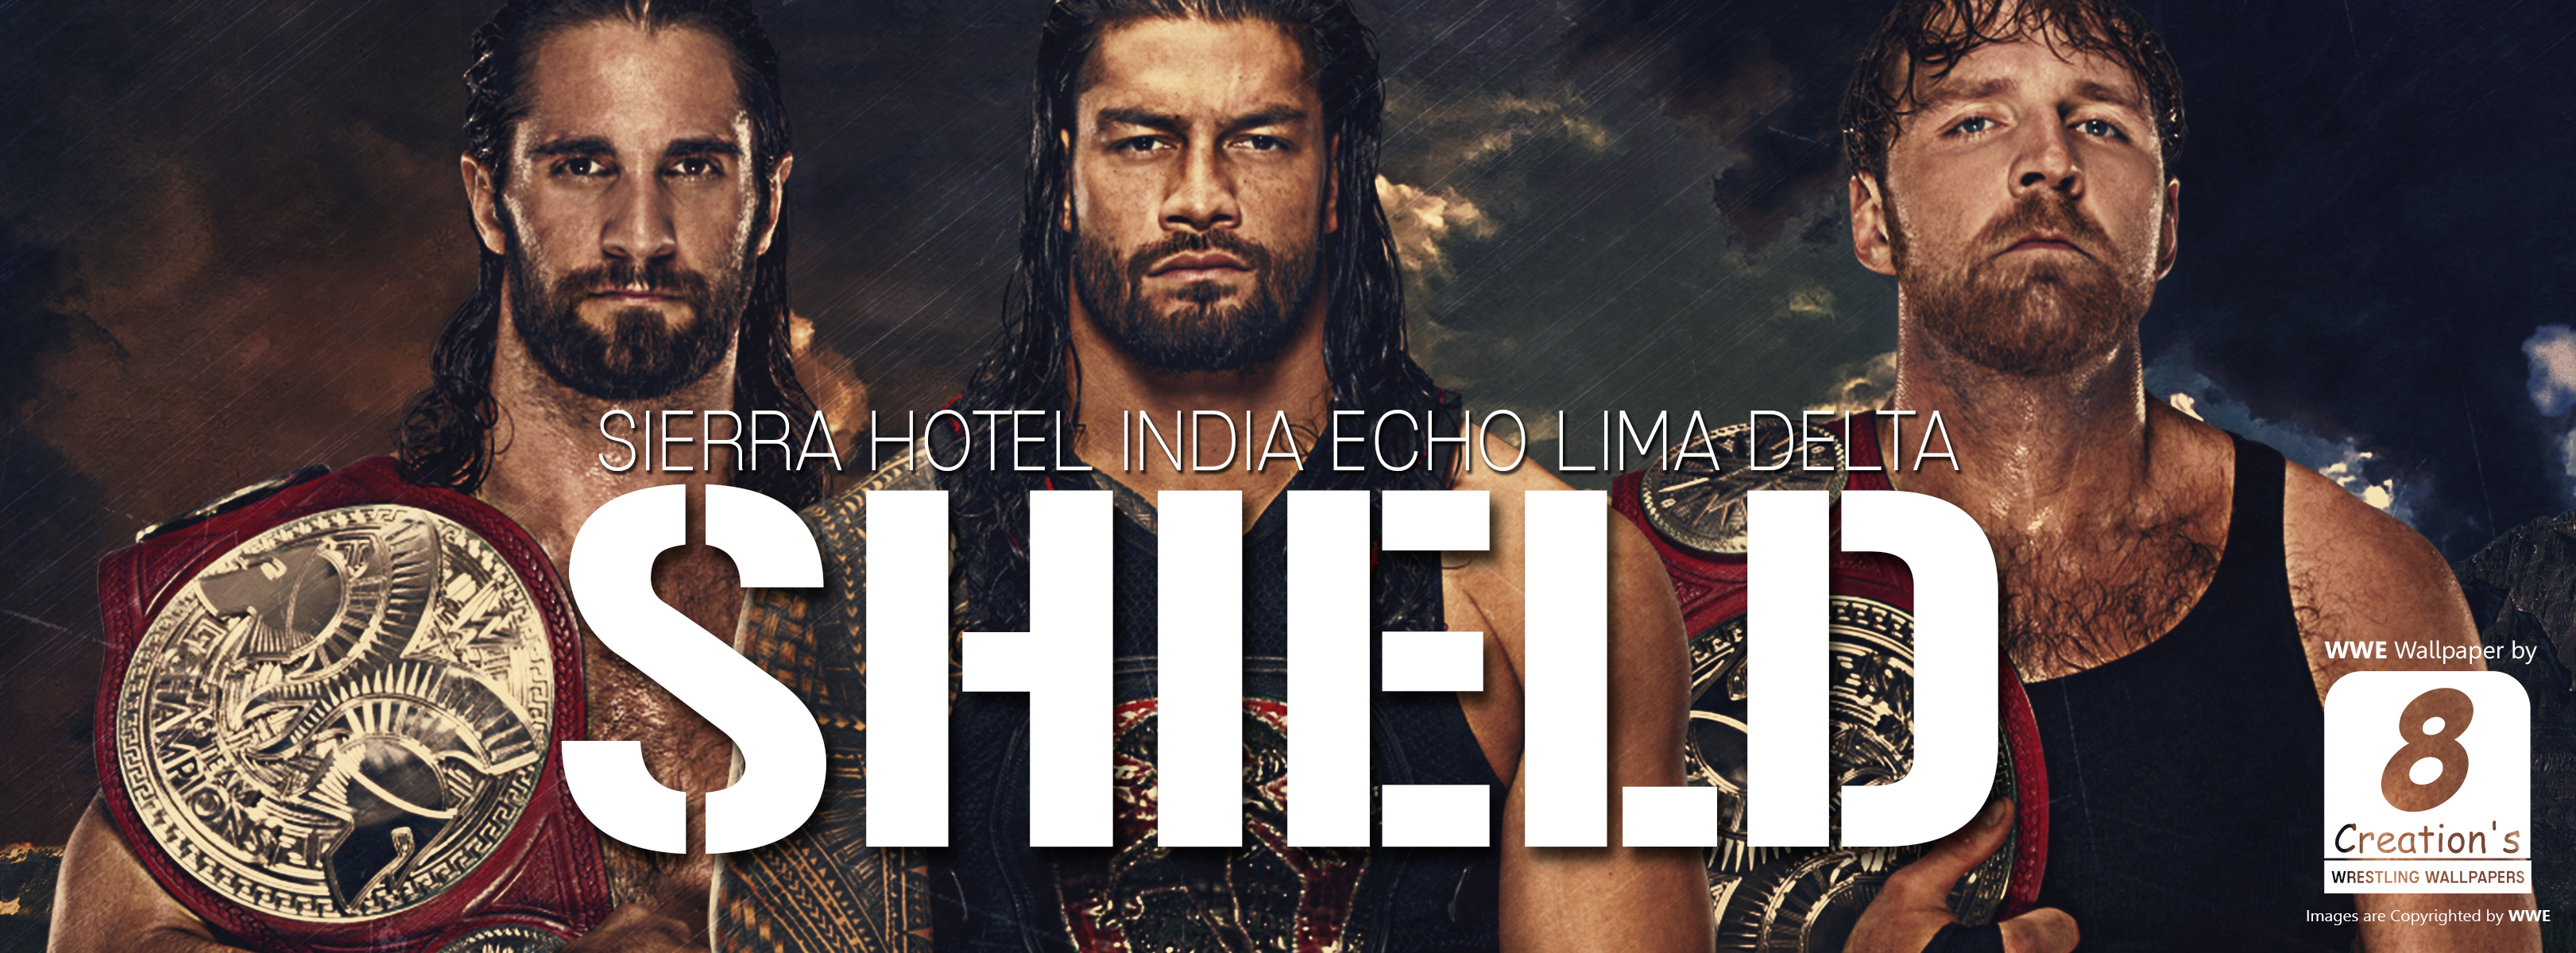 wwe shield 2017 facebook cover photo by arunraj1791 on